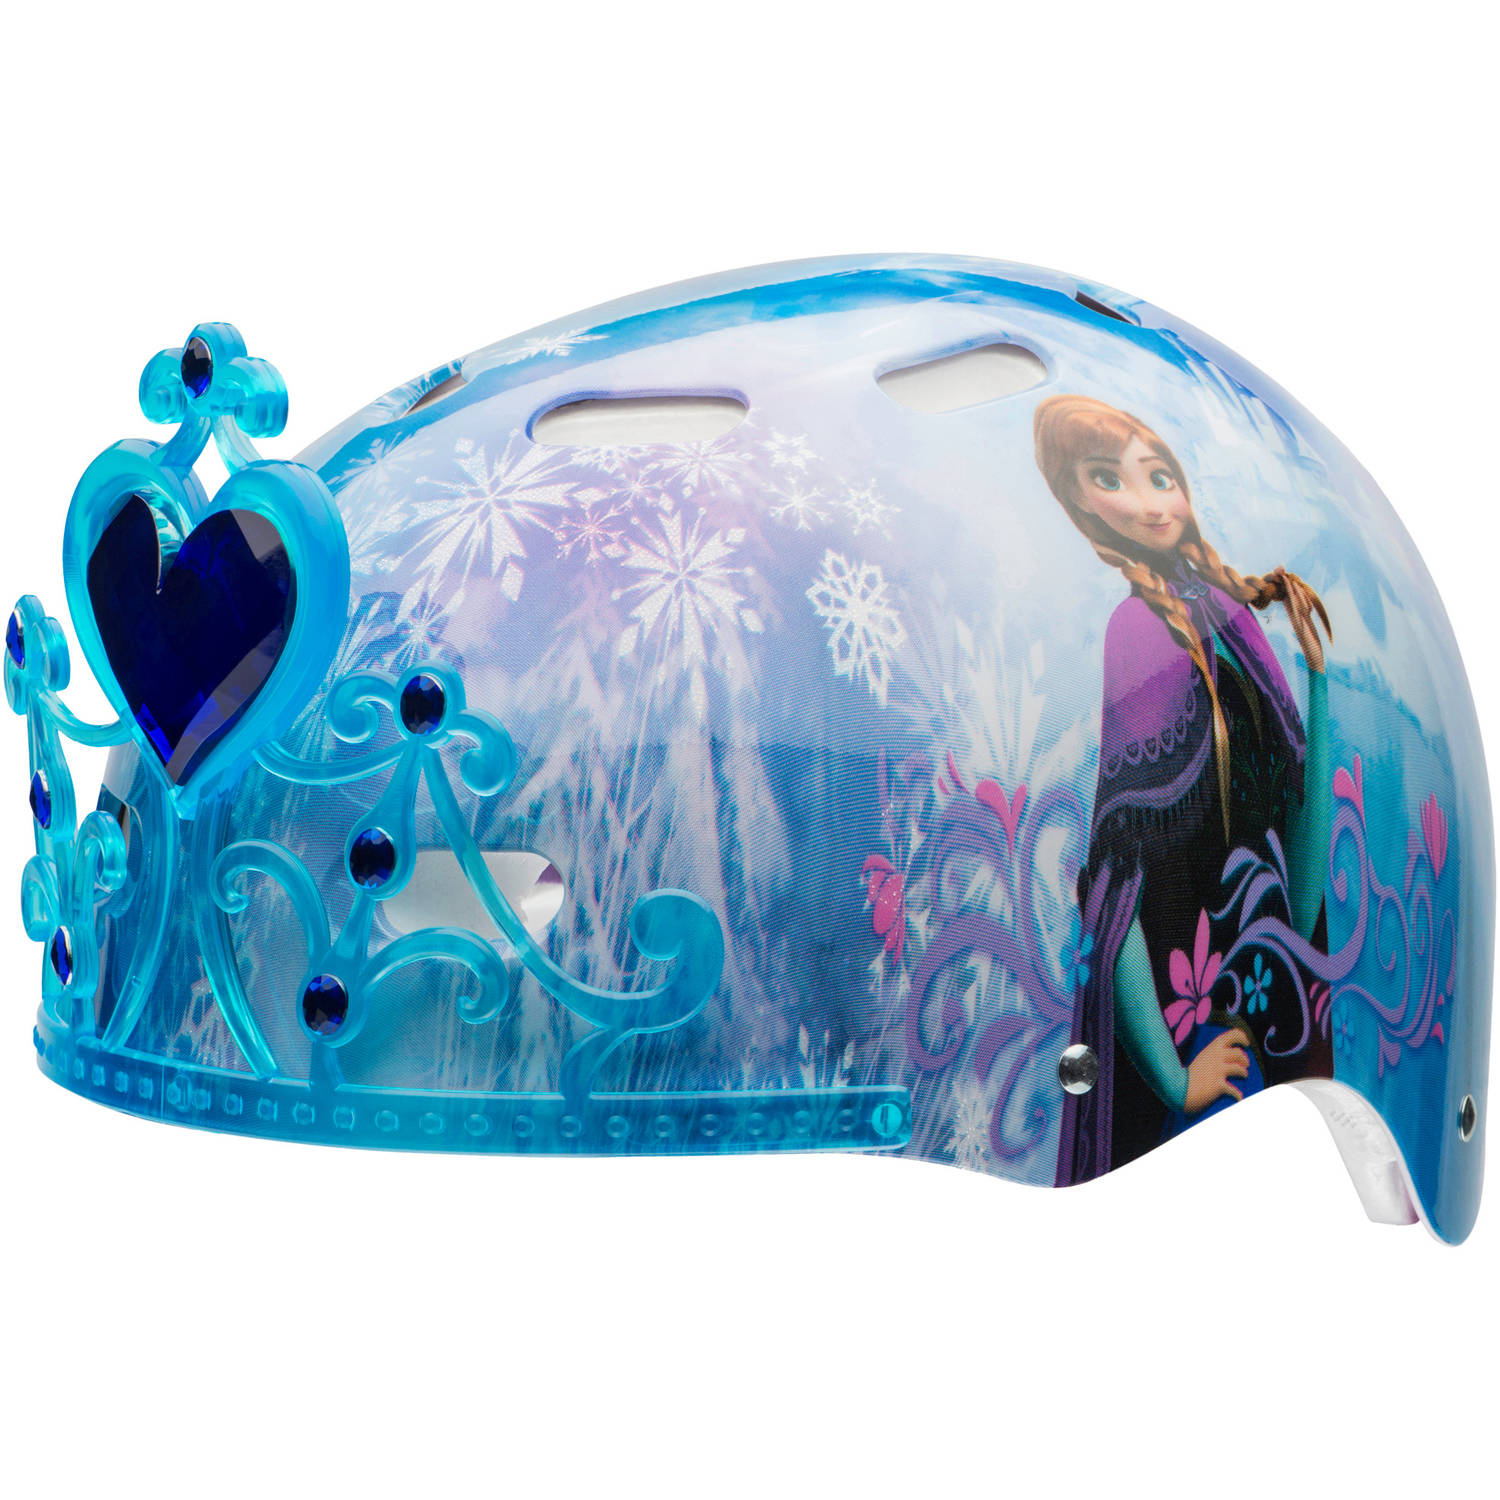 Bell Sports Disney Frozen Child 3D Helmet, Blue